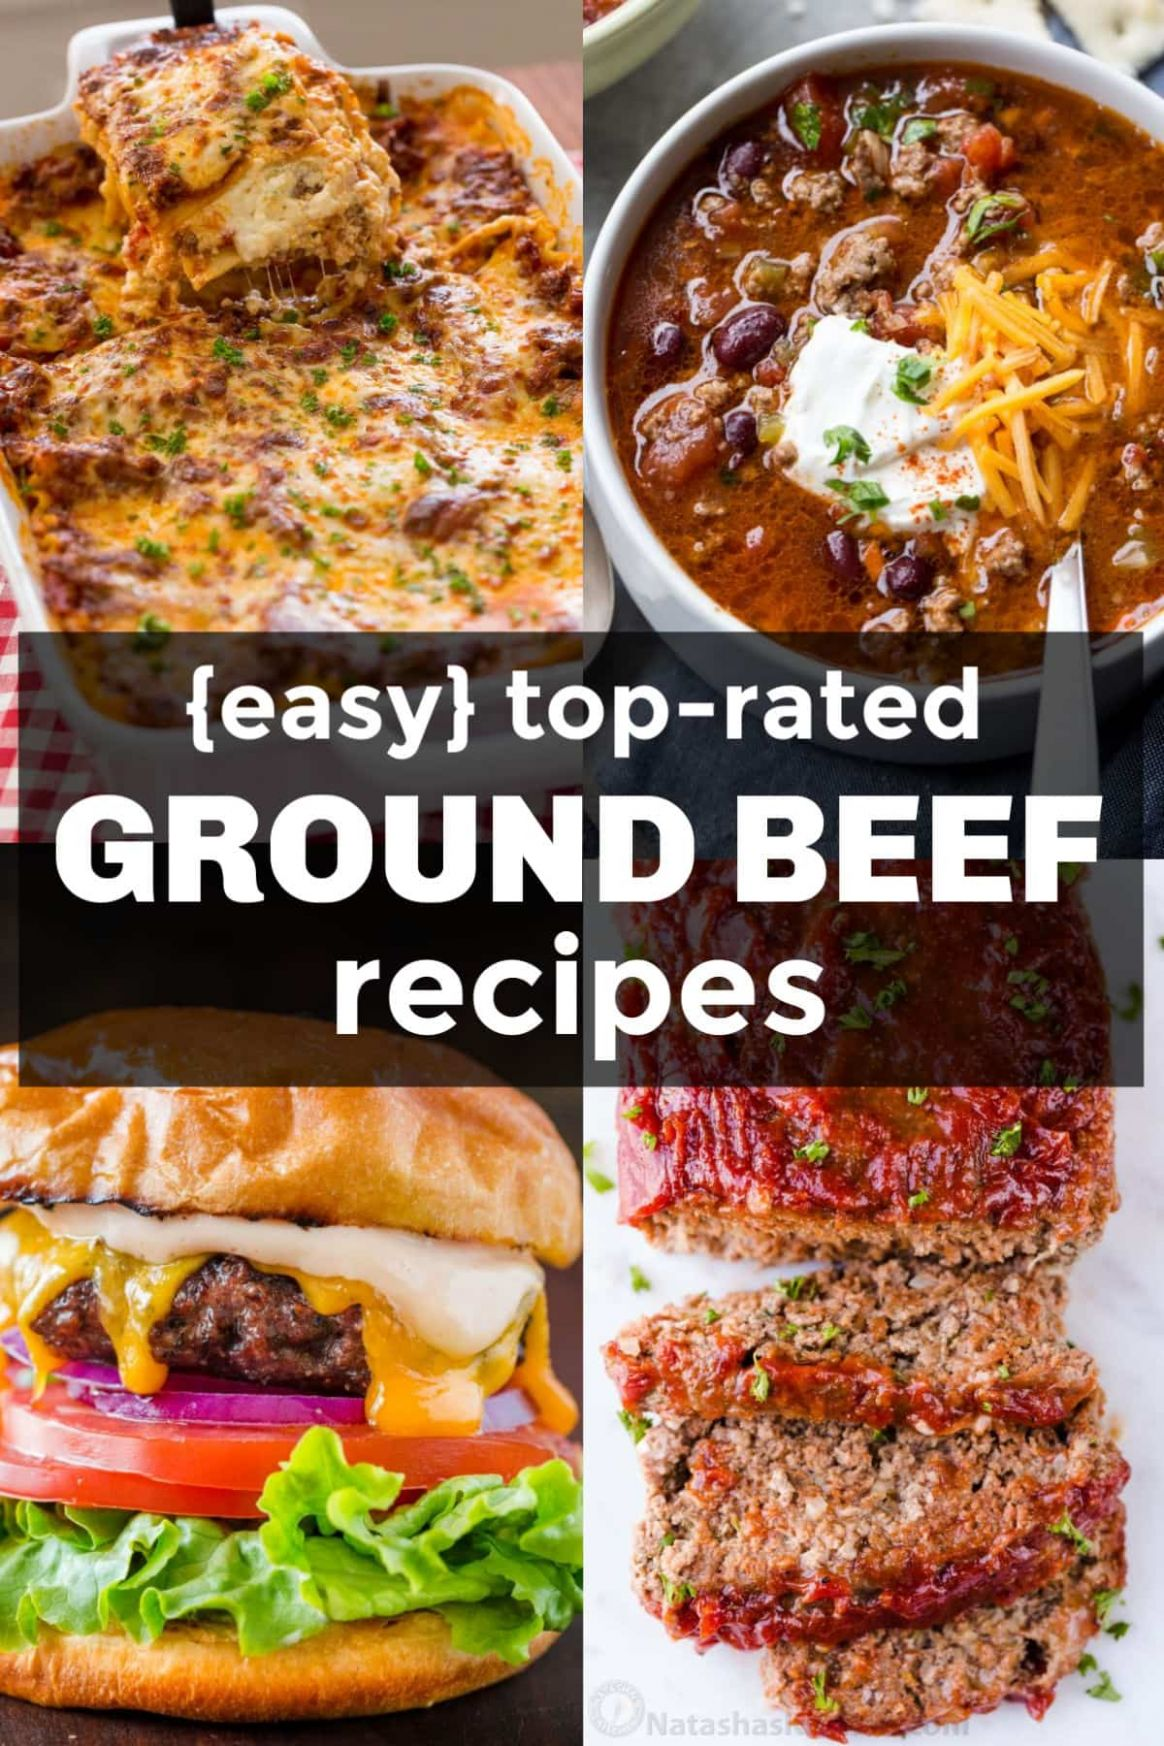 How to Cook Ground Beef for Ground Beef Recipes - Easy Recipes Made With Ground Beef